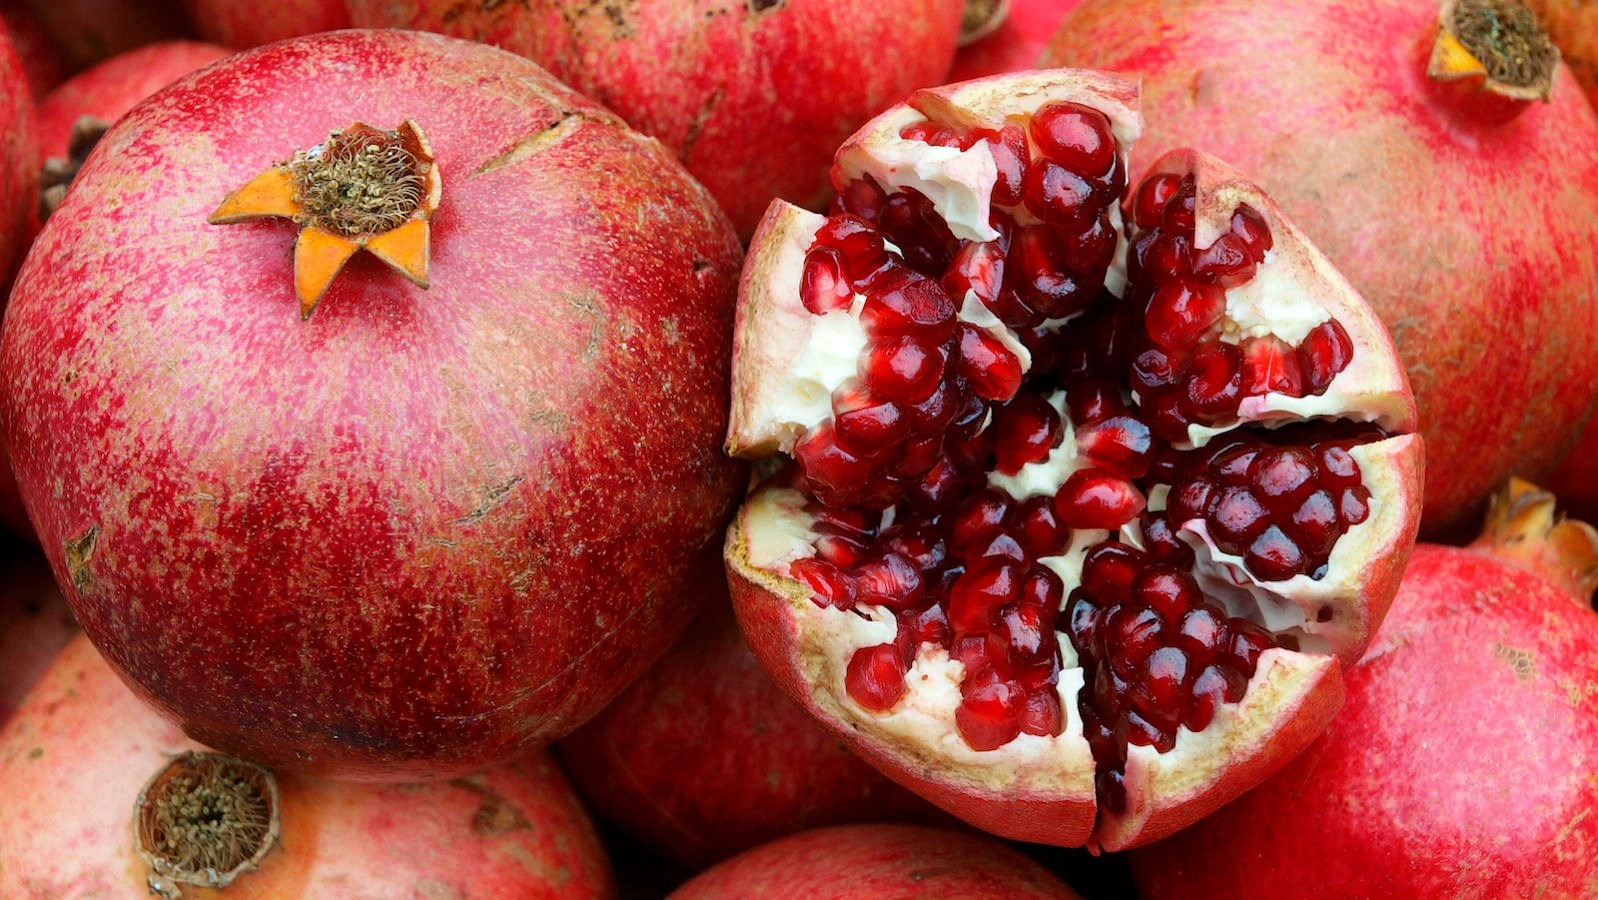 Pomegranate Pics 9 Jewish Things About Pomegranates My Jewish Learning